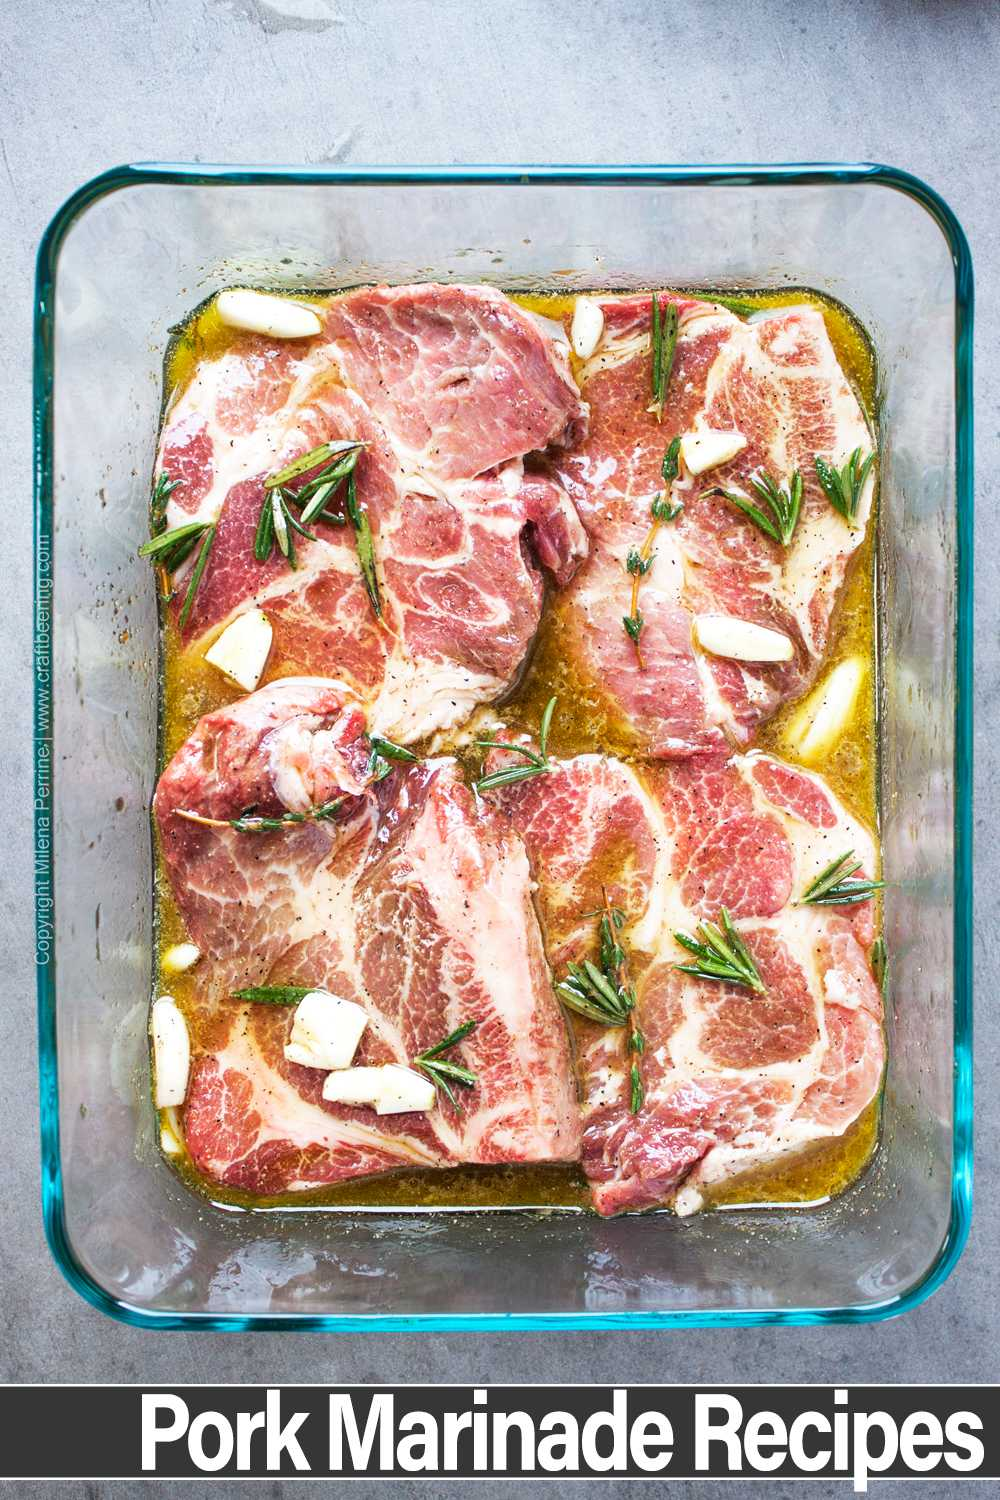 Pork marinade recipe collection and tips on how to execute them safely.